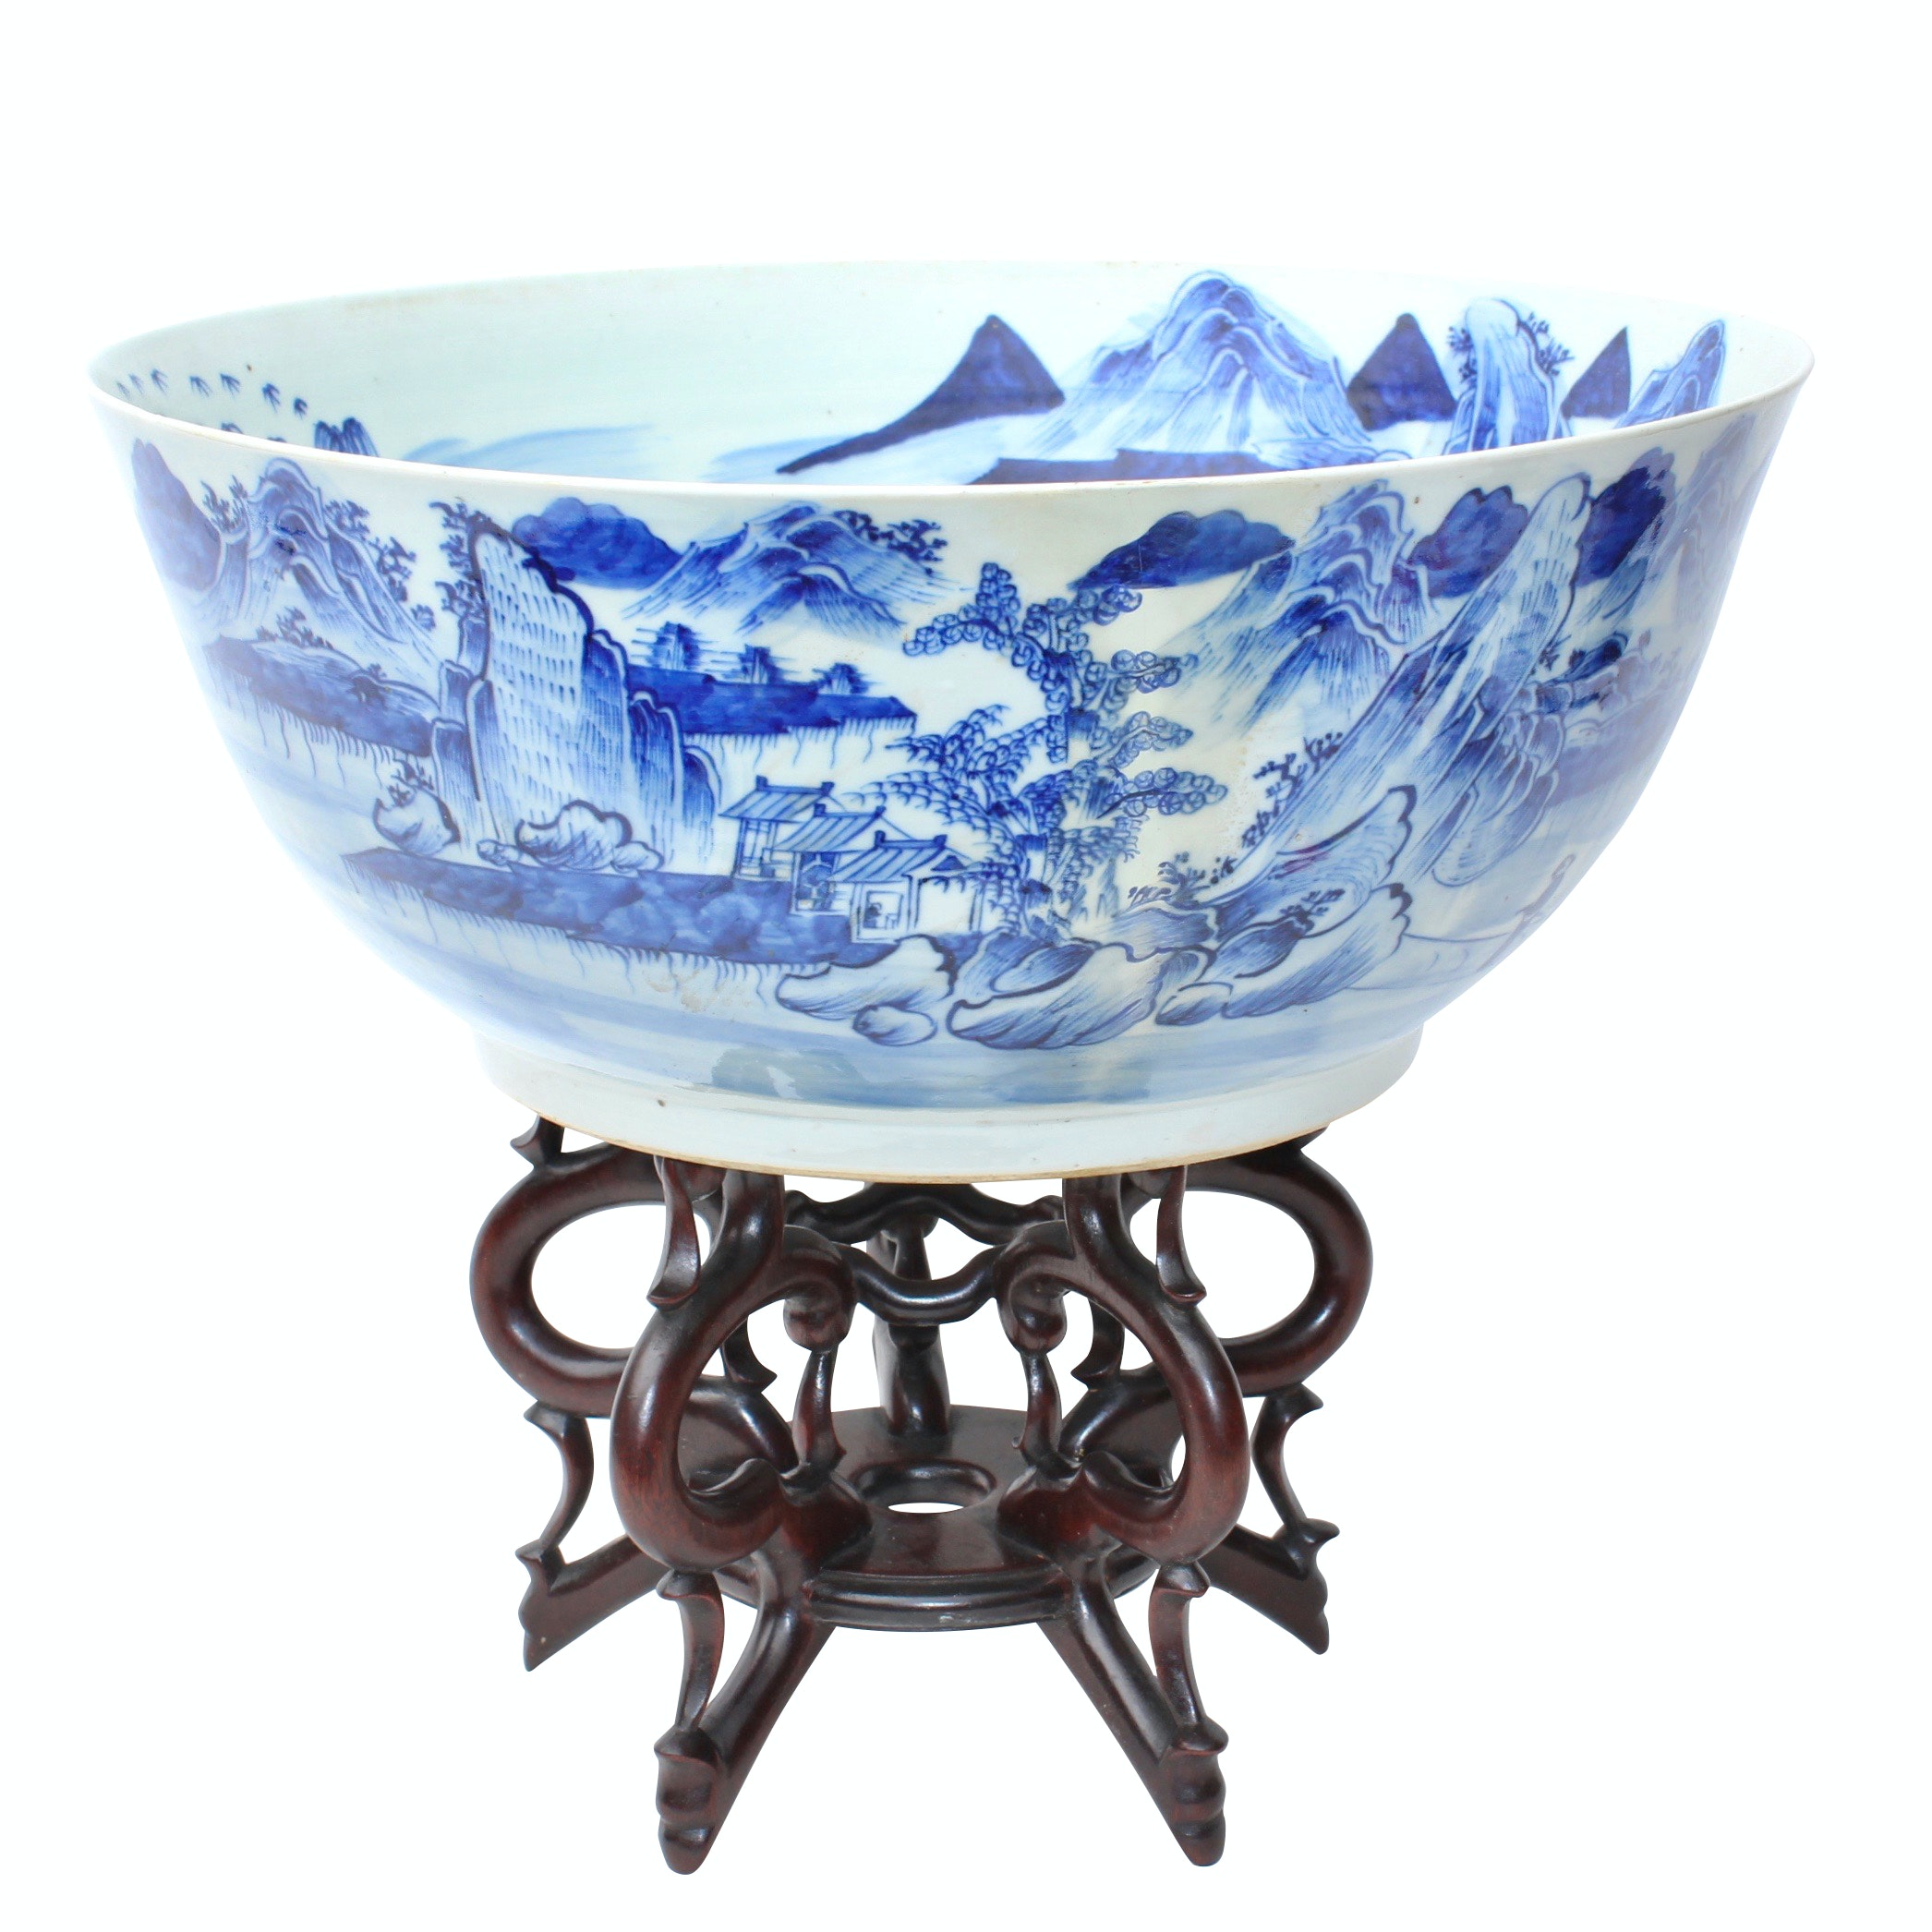 Chinese Blue and White Porcelain Bowl, Qing Dynasty